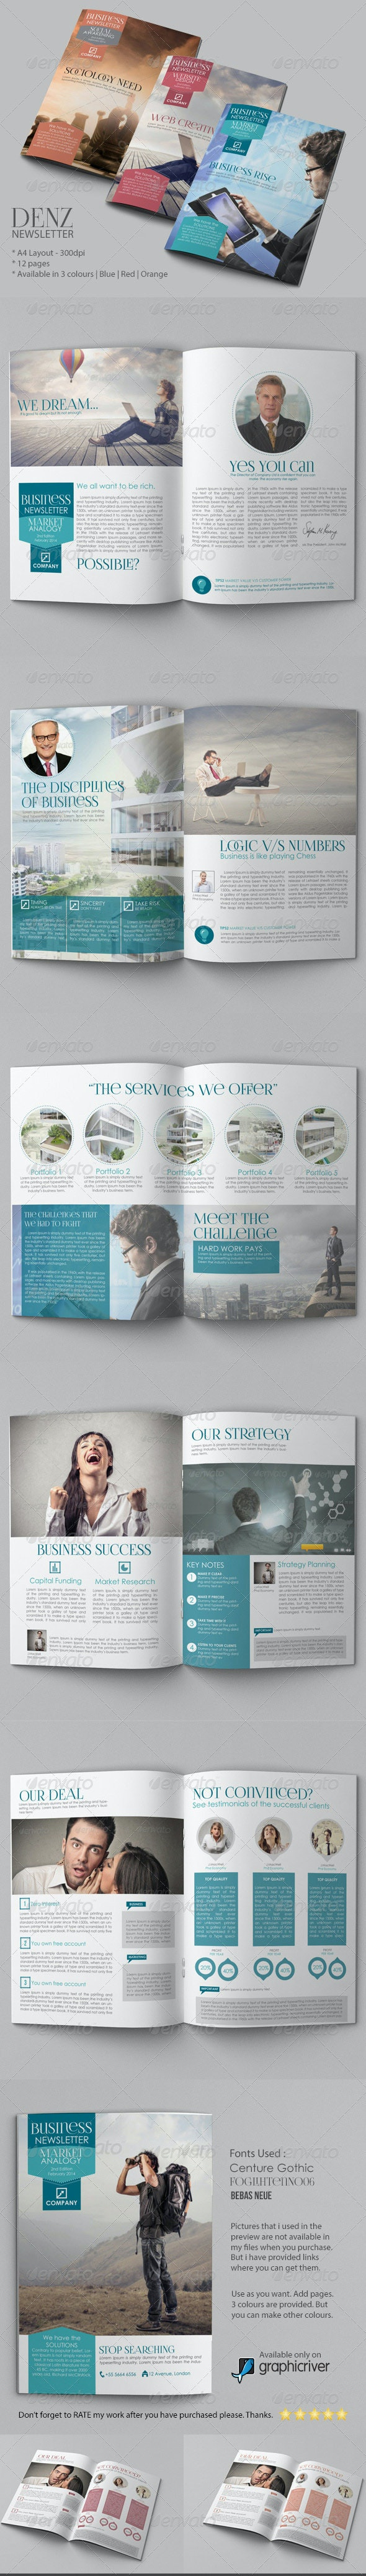 Business Newsletter Vol IV - Newsletters Print Templates